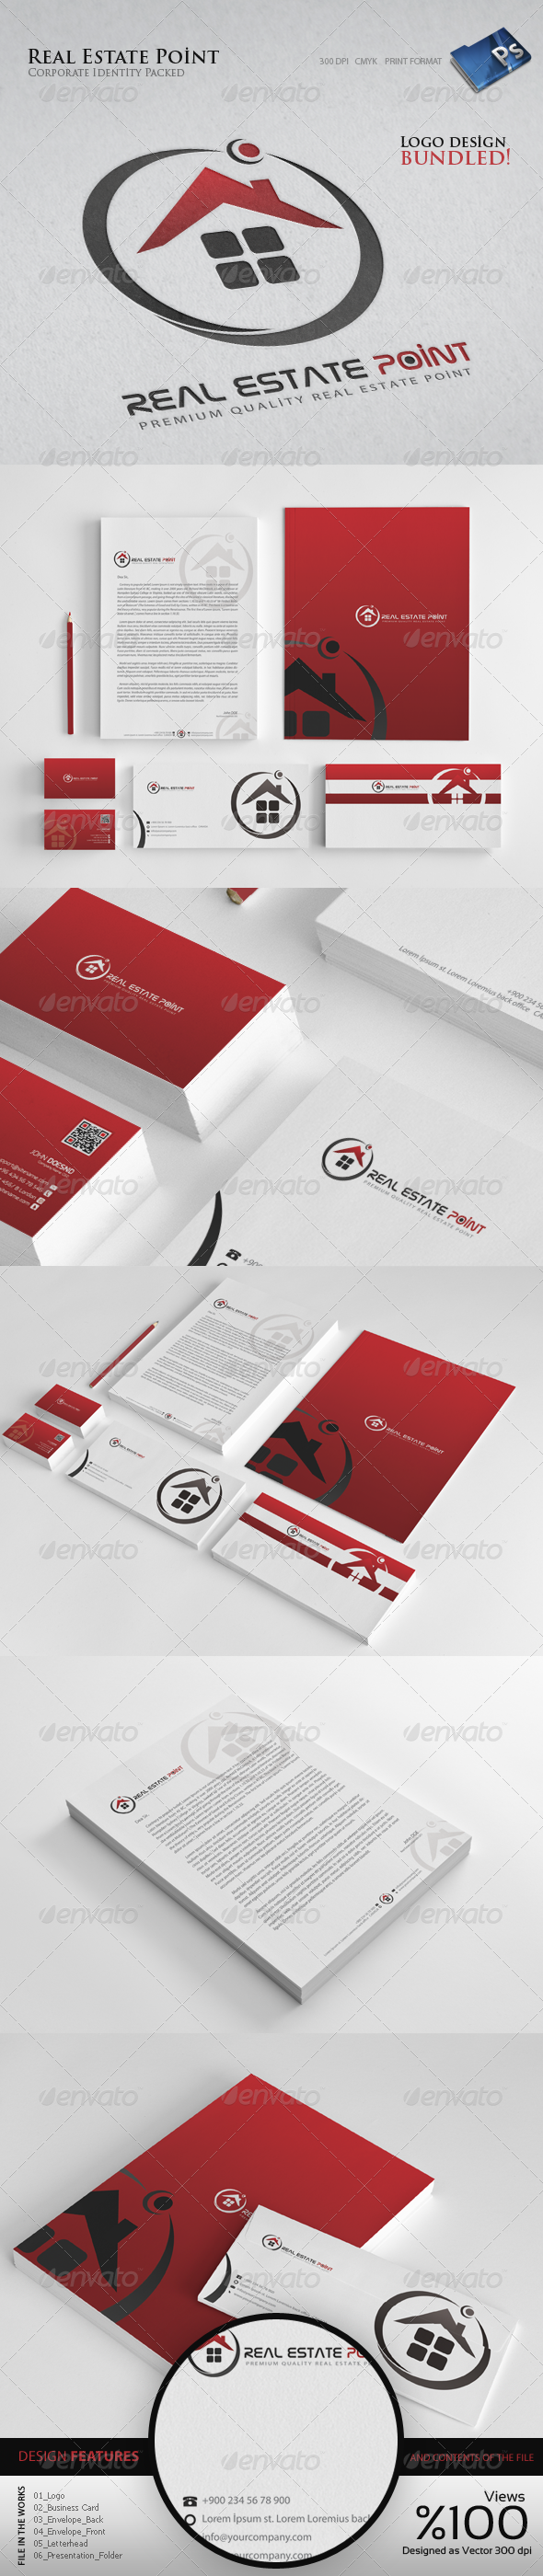 GraphicRiver Real Estate Point Corporate Identity 4092924